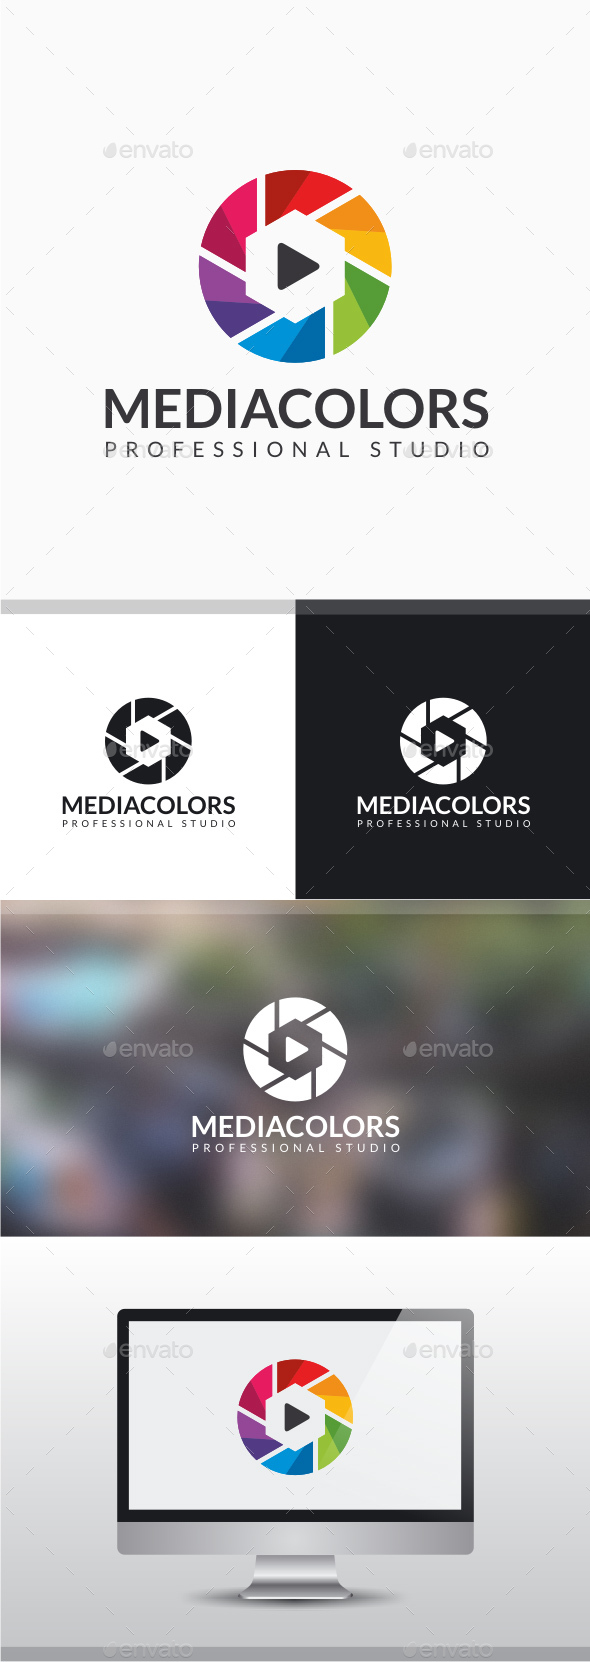 Media Colors Logo - Vector Abstract